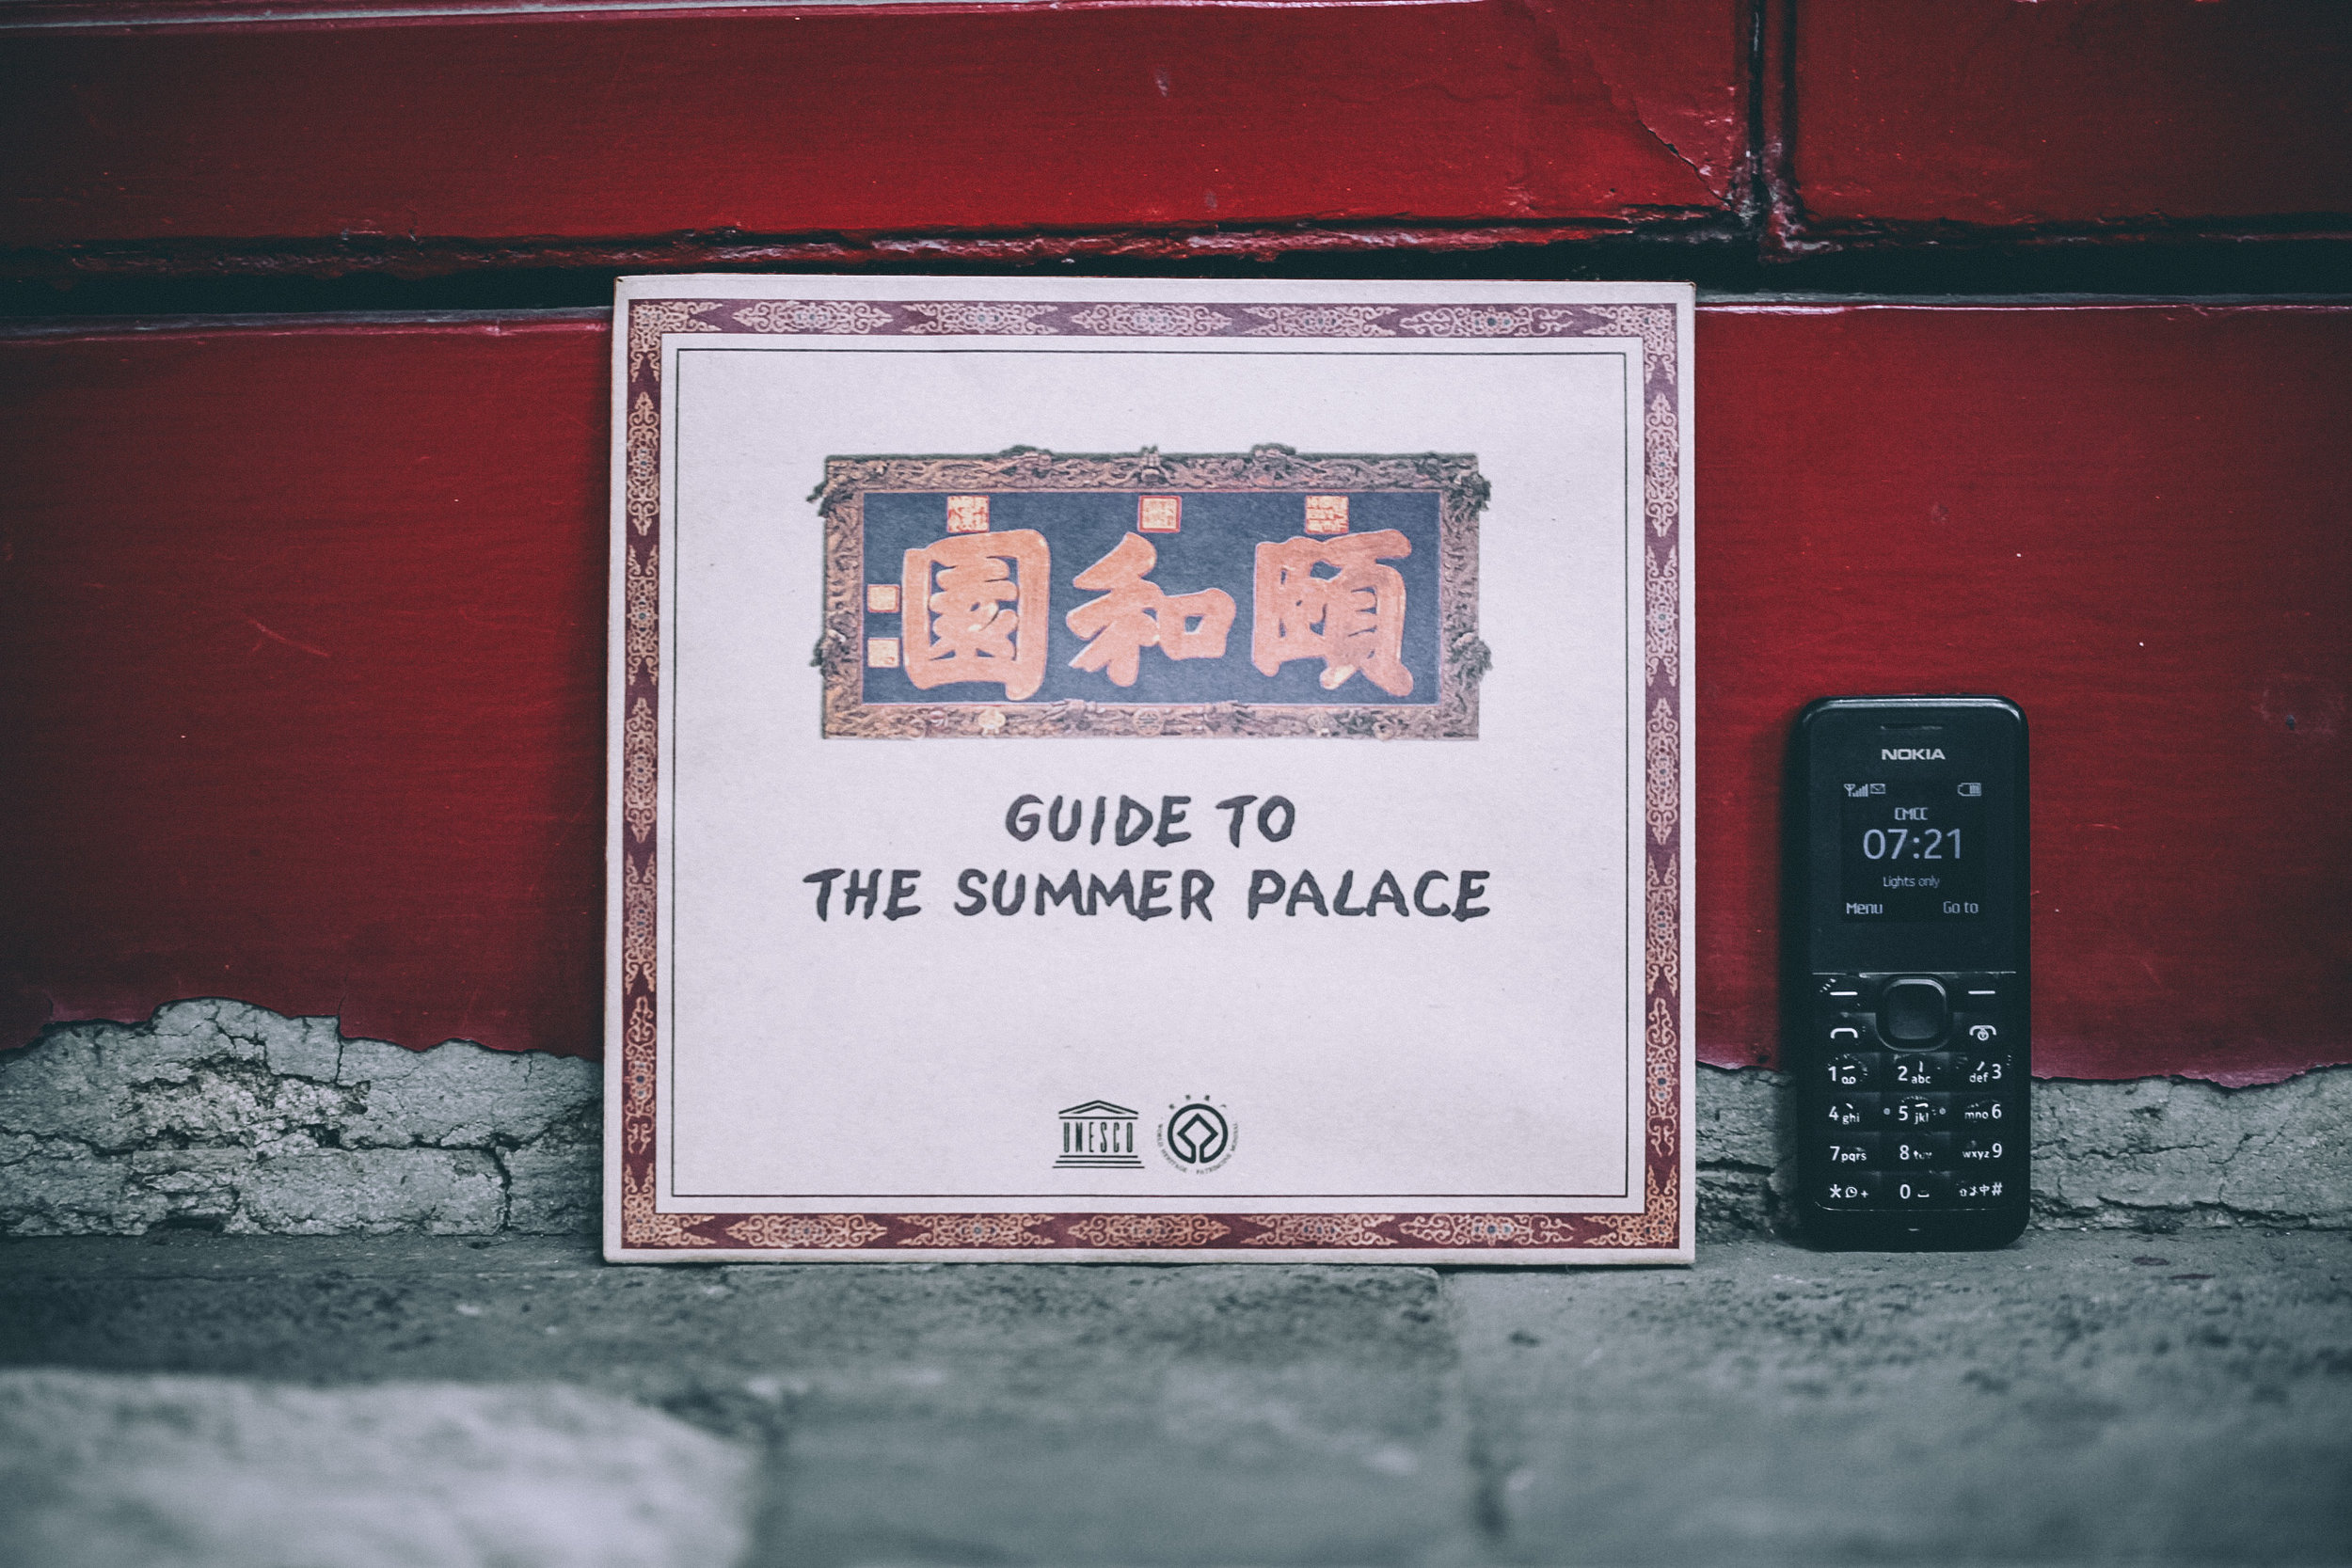 guide-to-summer-palace-by-aman-summer-palace-0035.jpg